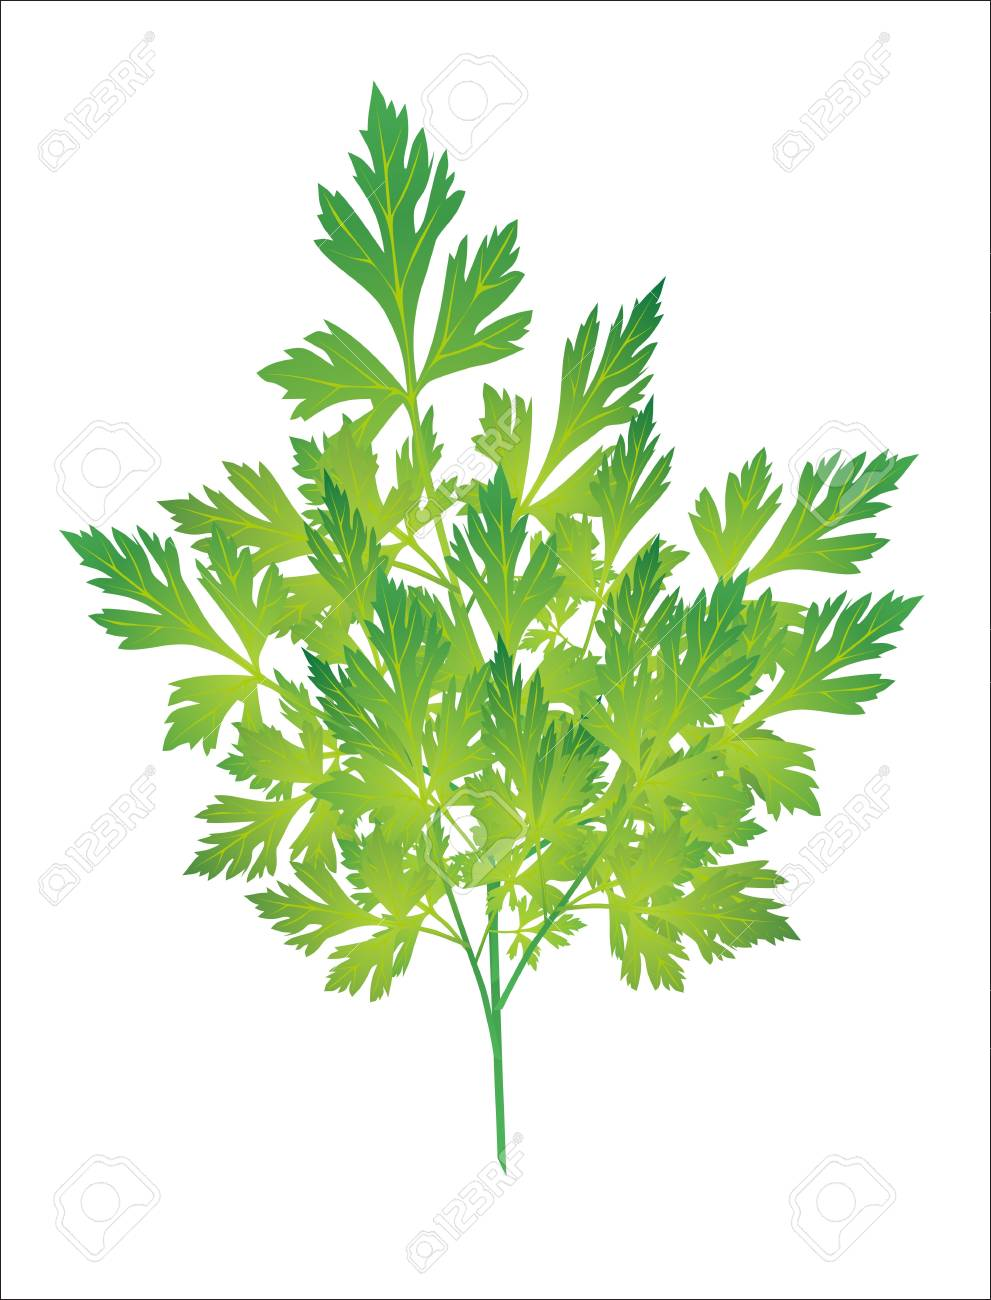 green leaves of parsley isolated on white background Stock Vector - 19394486